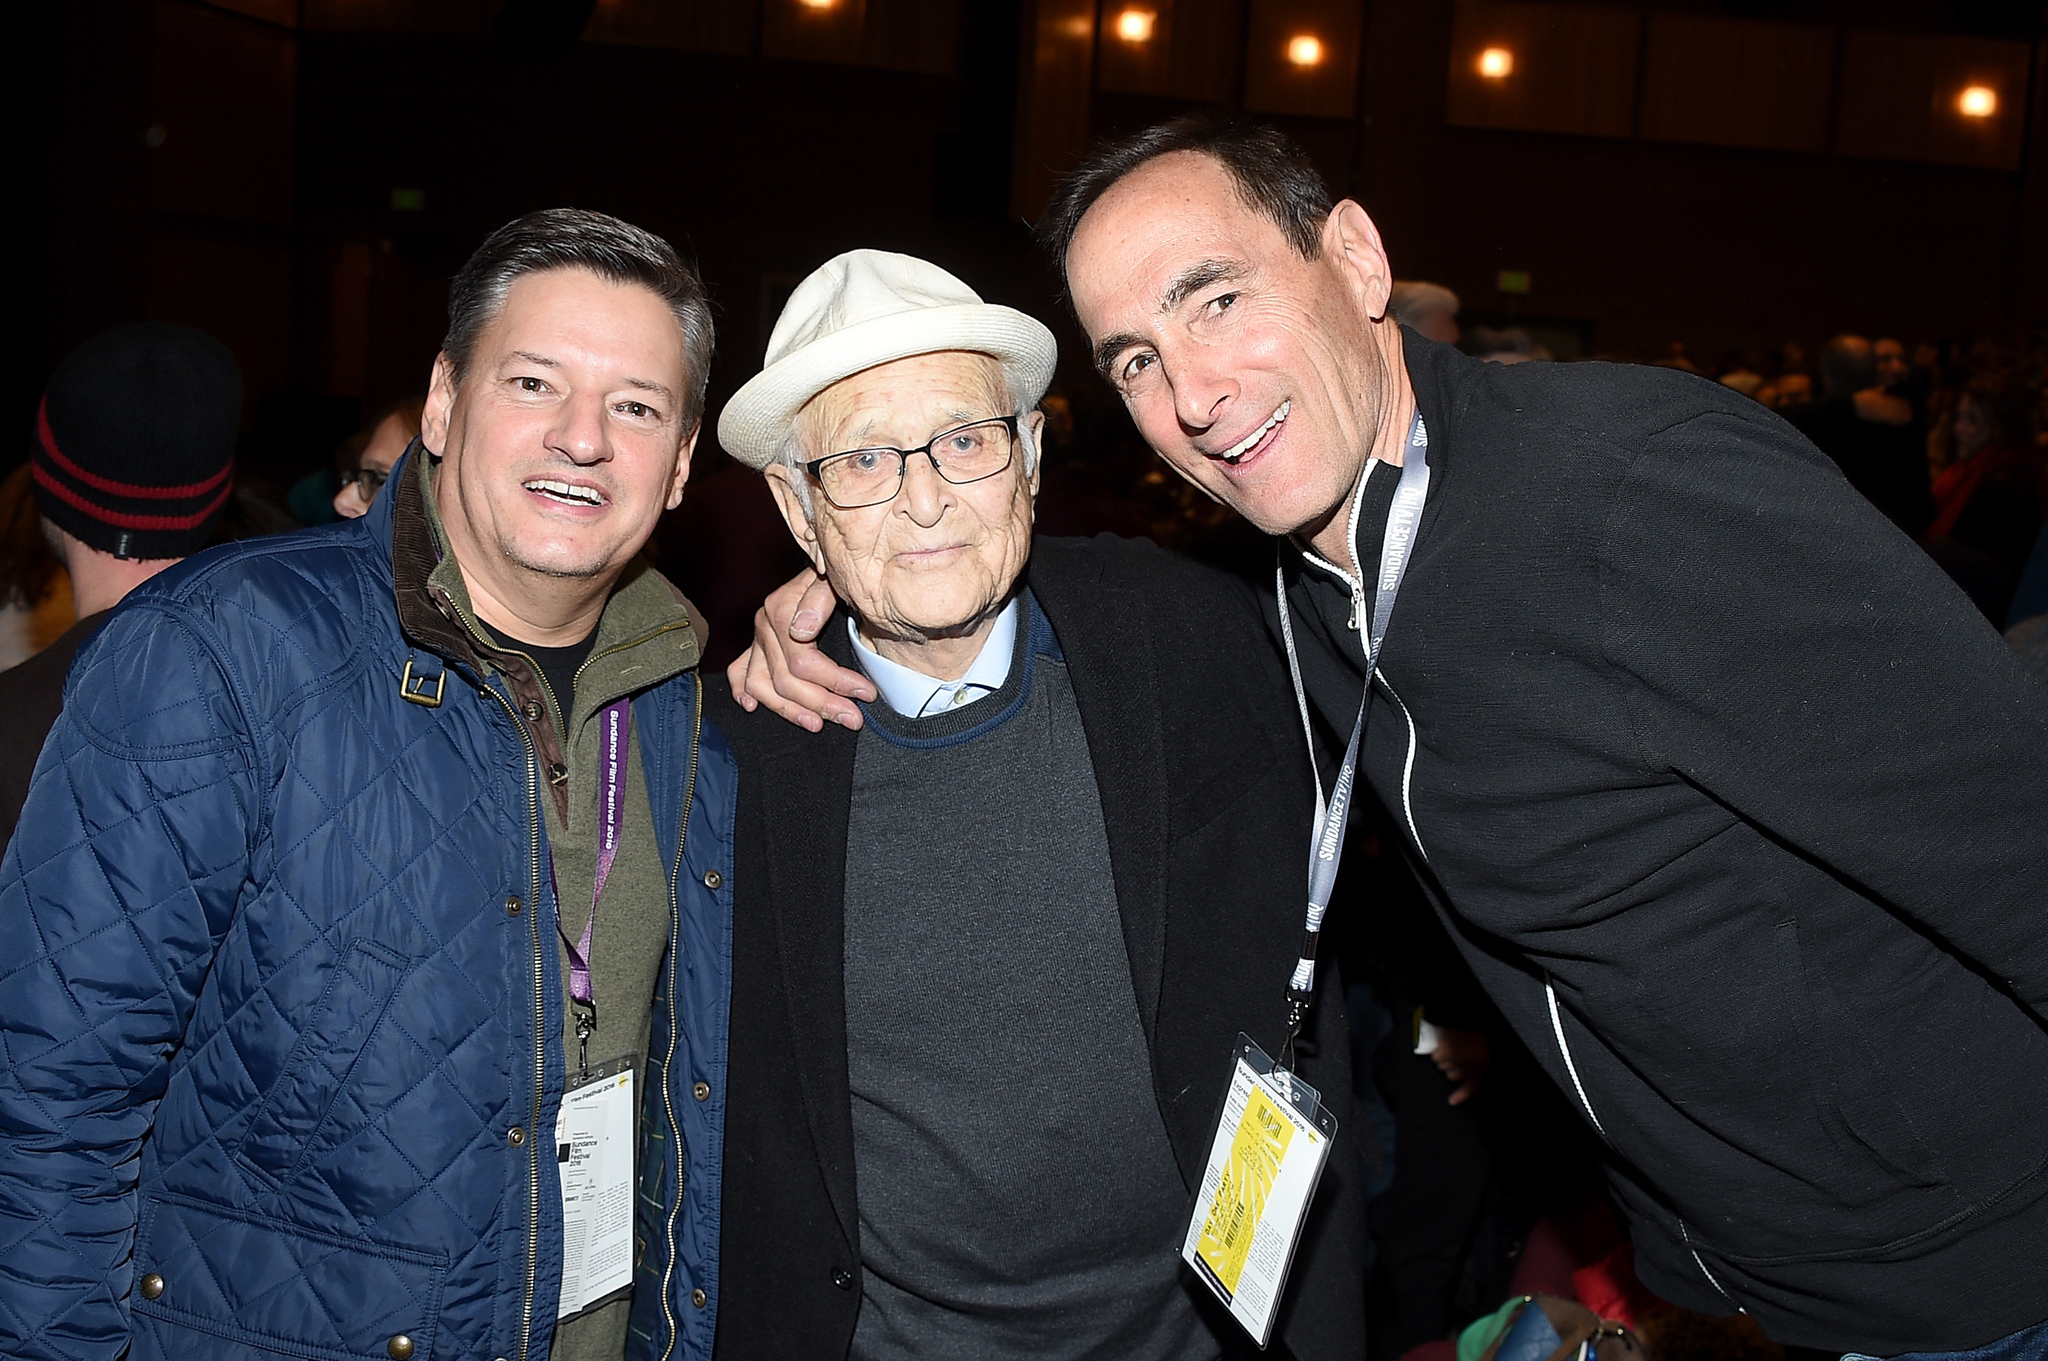 Norman Lear and Ted Sarandos at an event for Norman Lear: Just Another Version of You (2016)